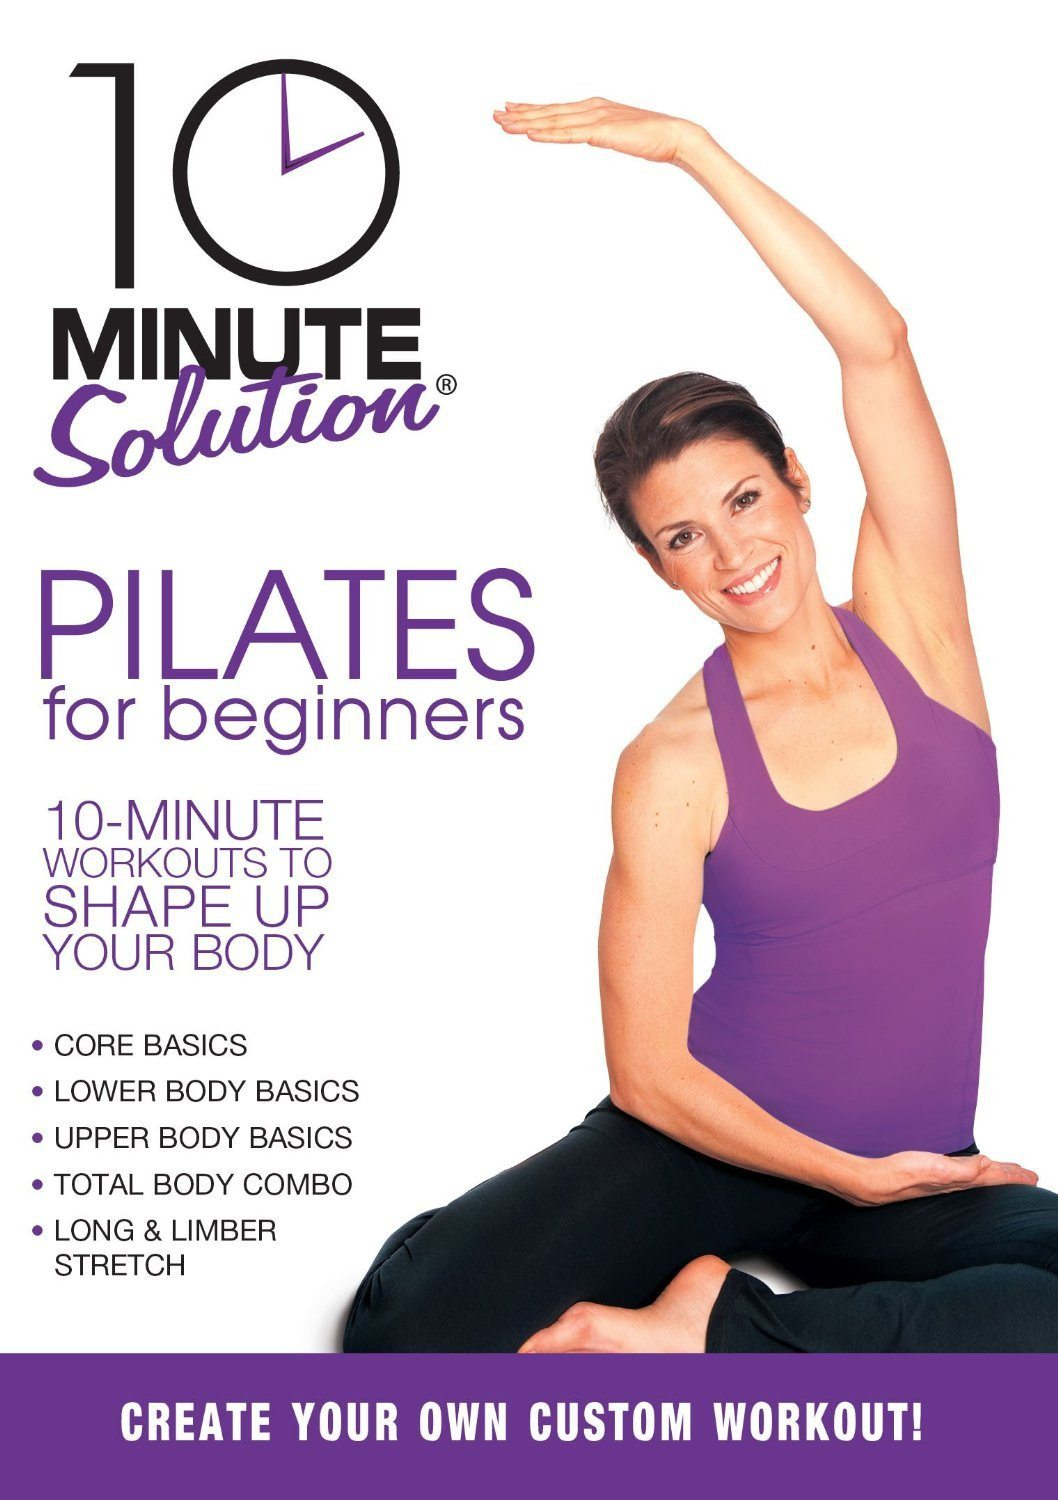 10 Minute Solution: Pilates for Beginners - Collage Video